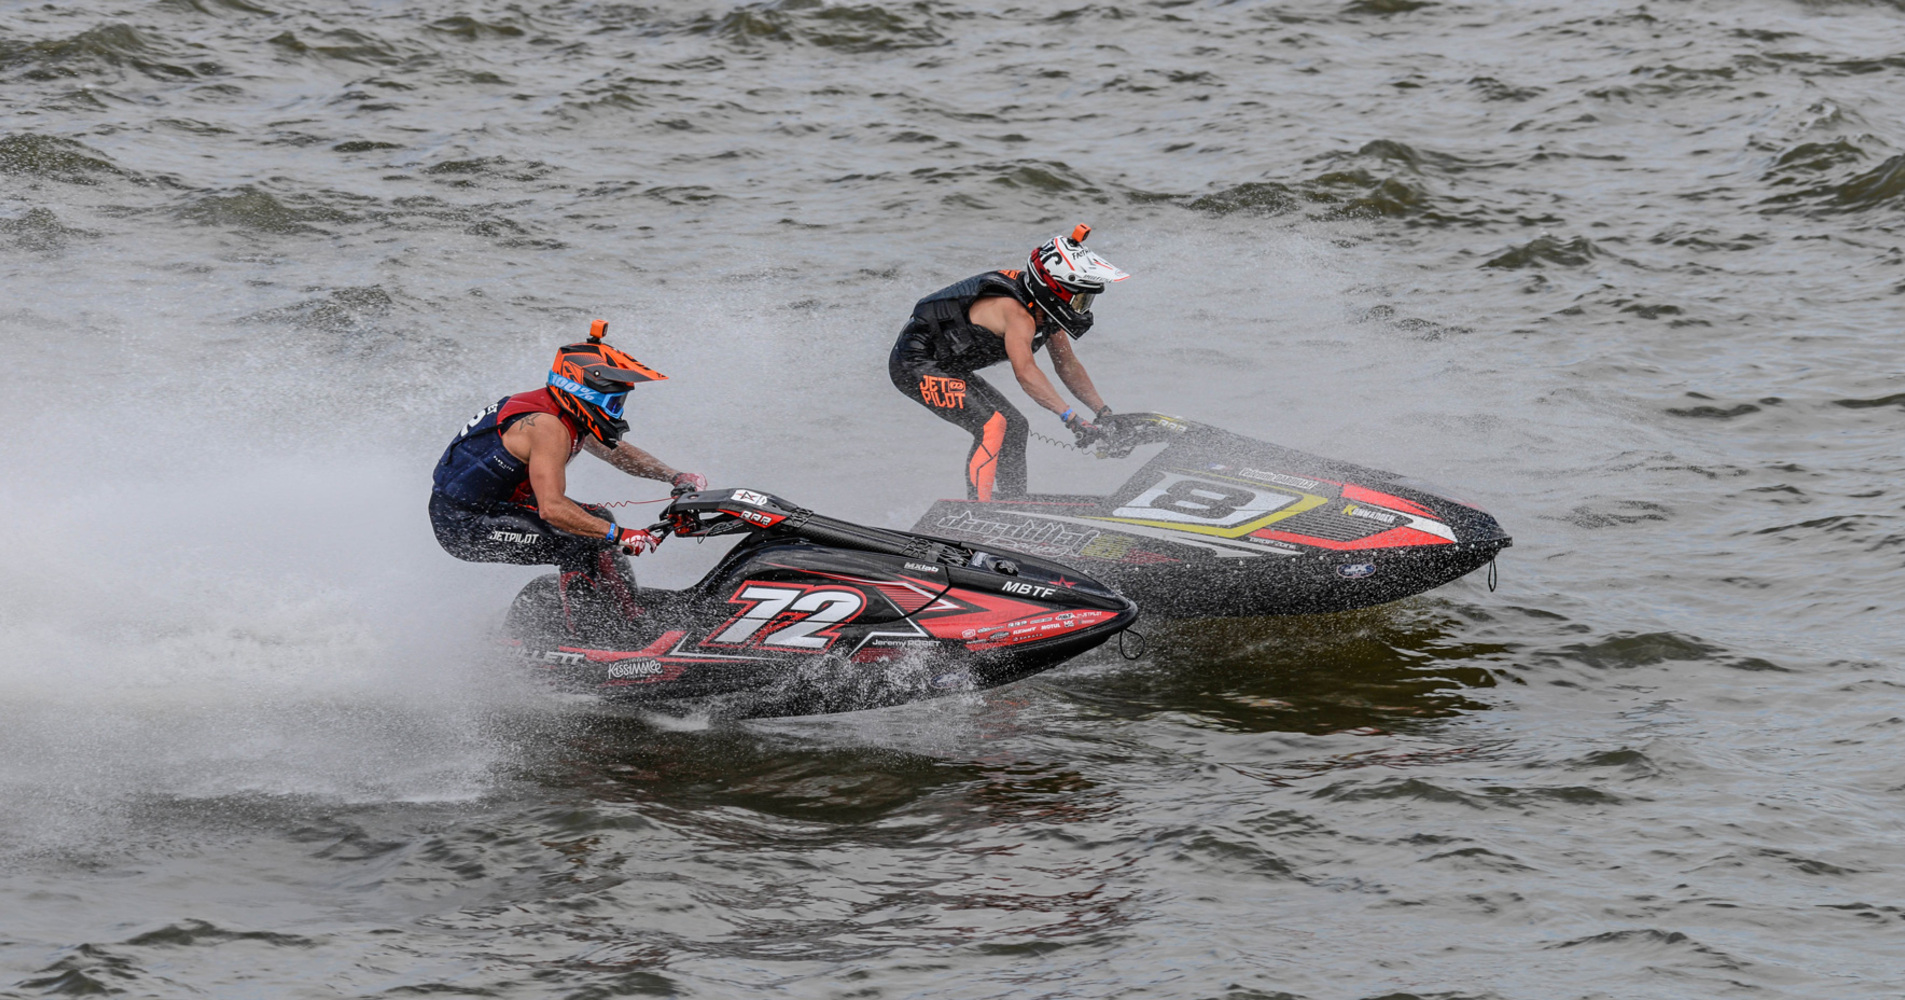 Jeremy Poret #72 and Valentin Dardillat #8 had great battle in last top at Vichy, let's see what happen on Lake Geneva !